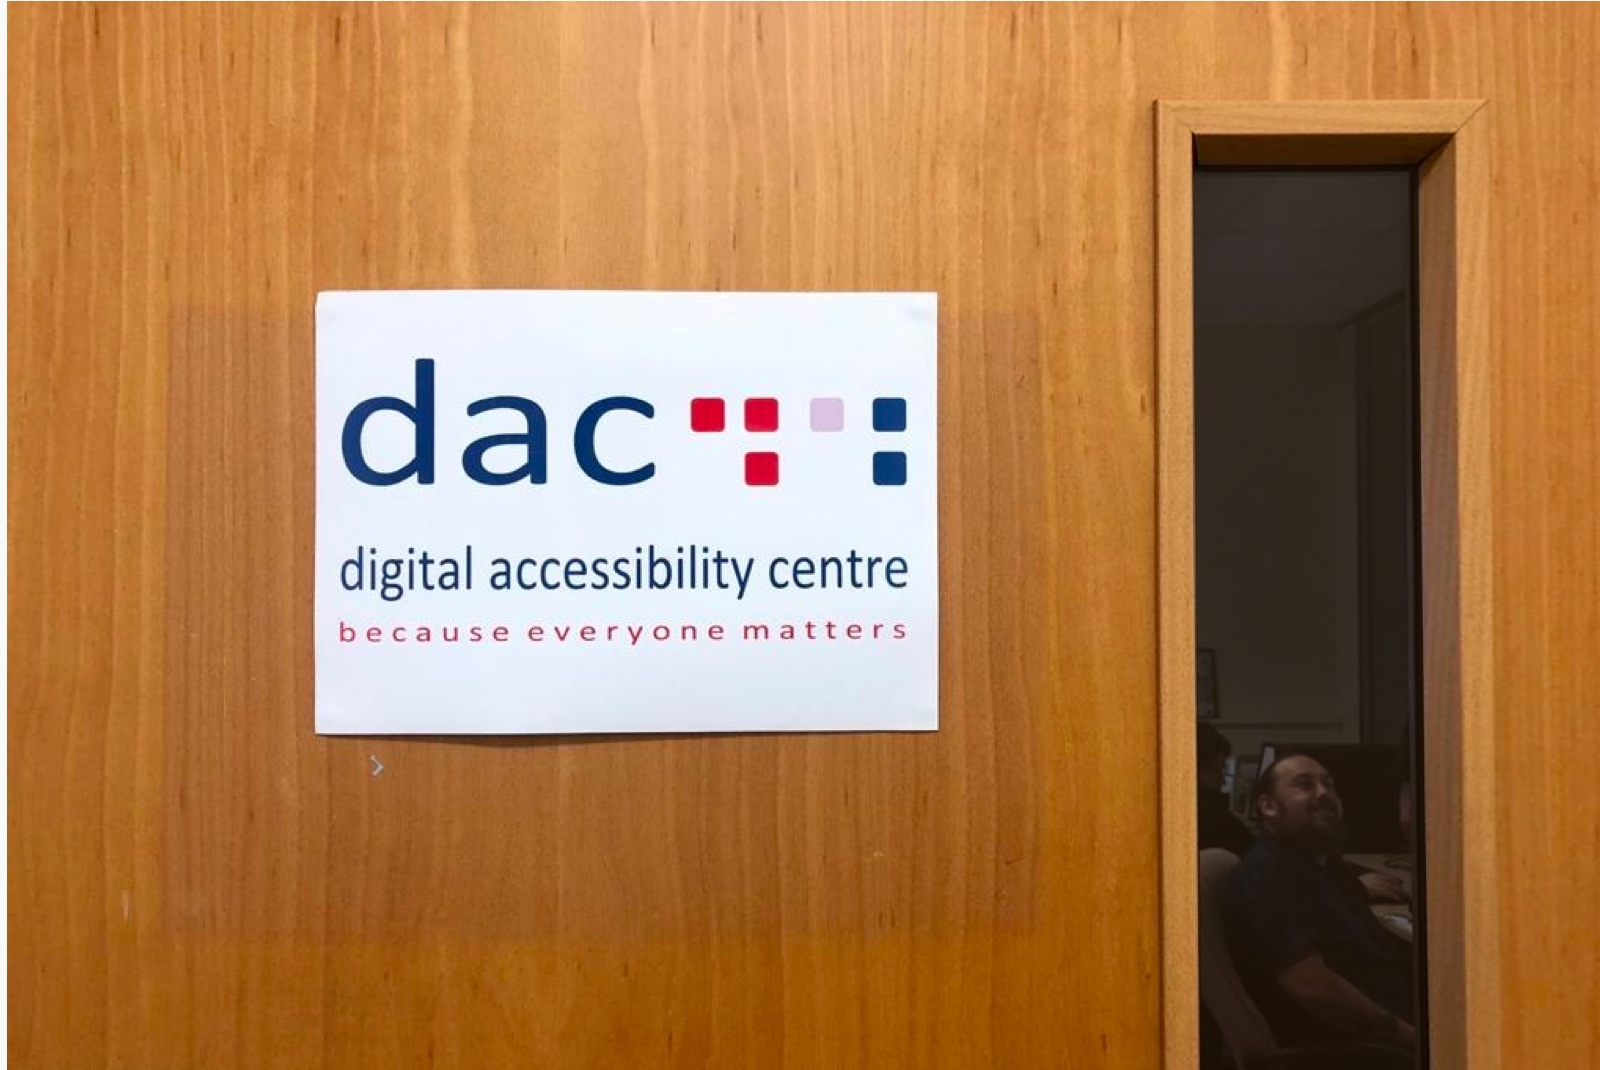 Photograph of a door with the DAC logo